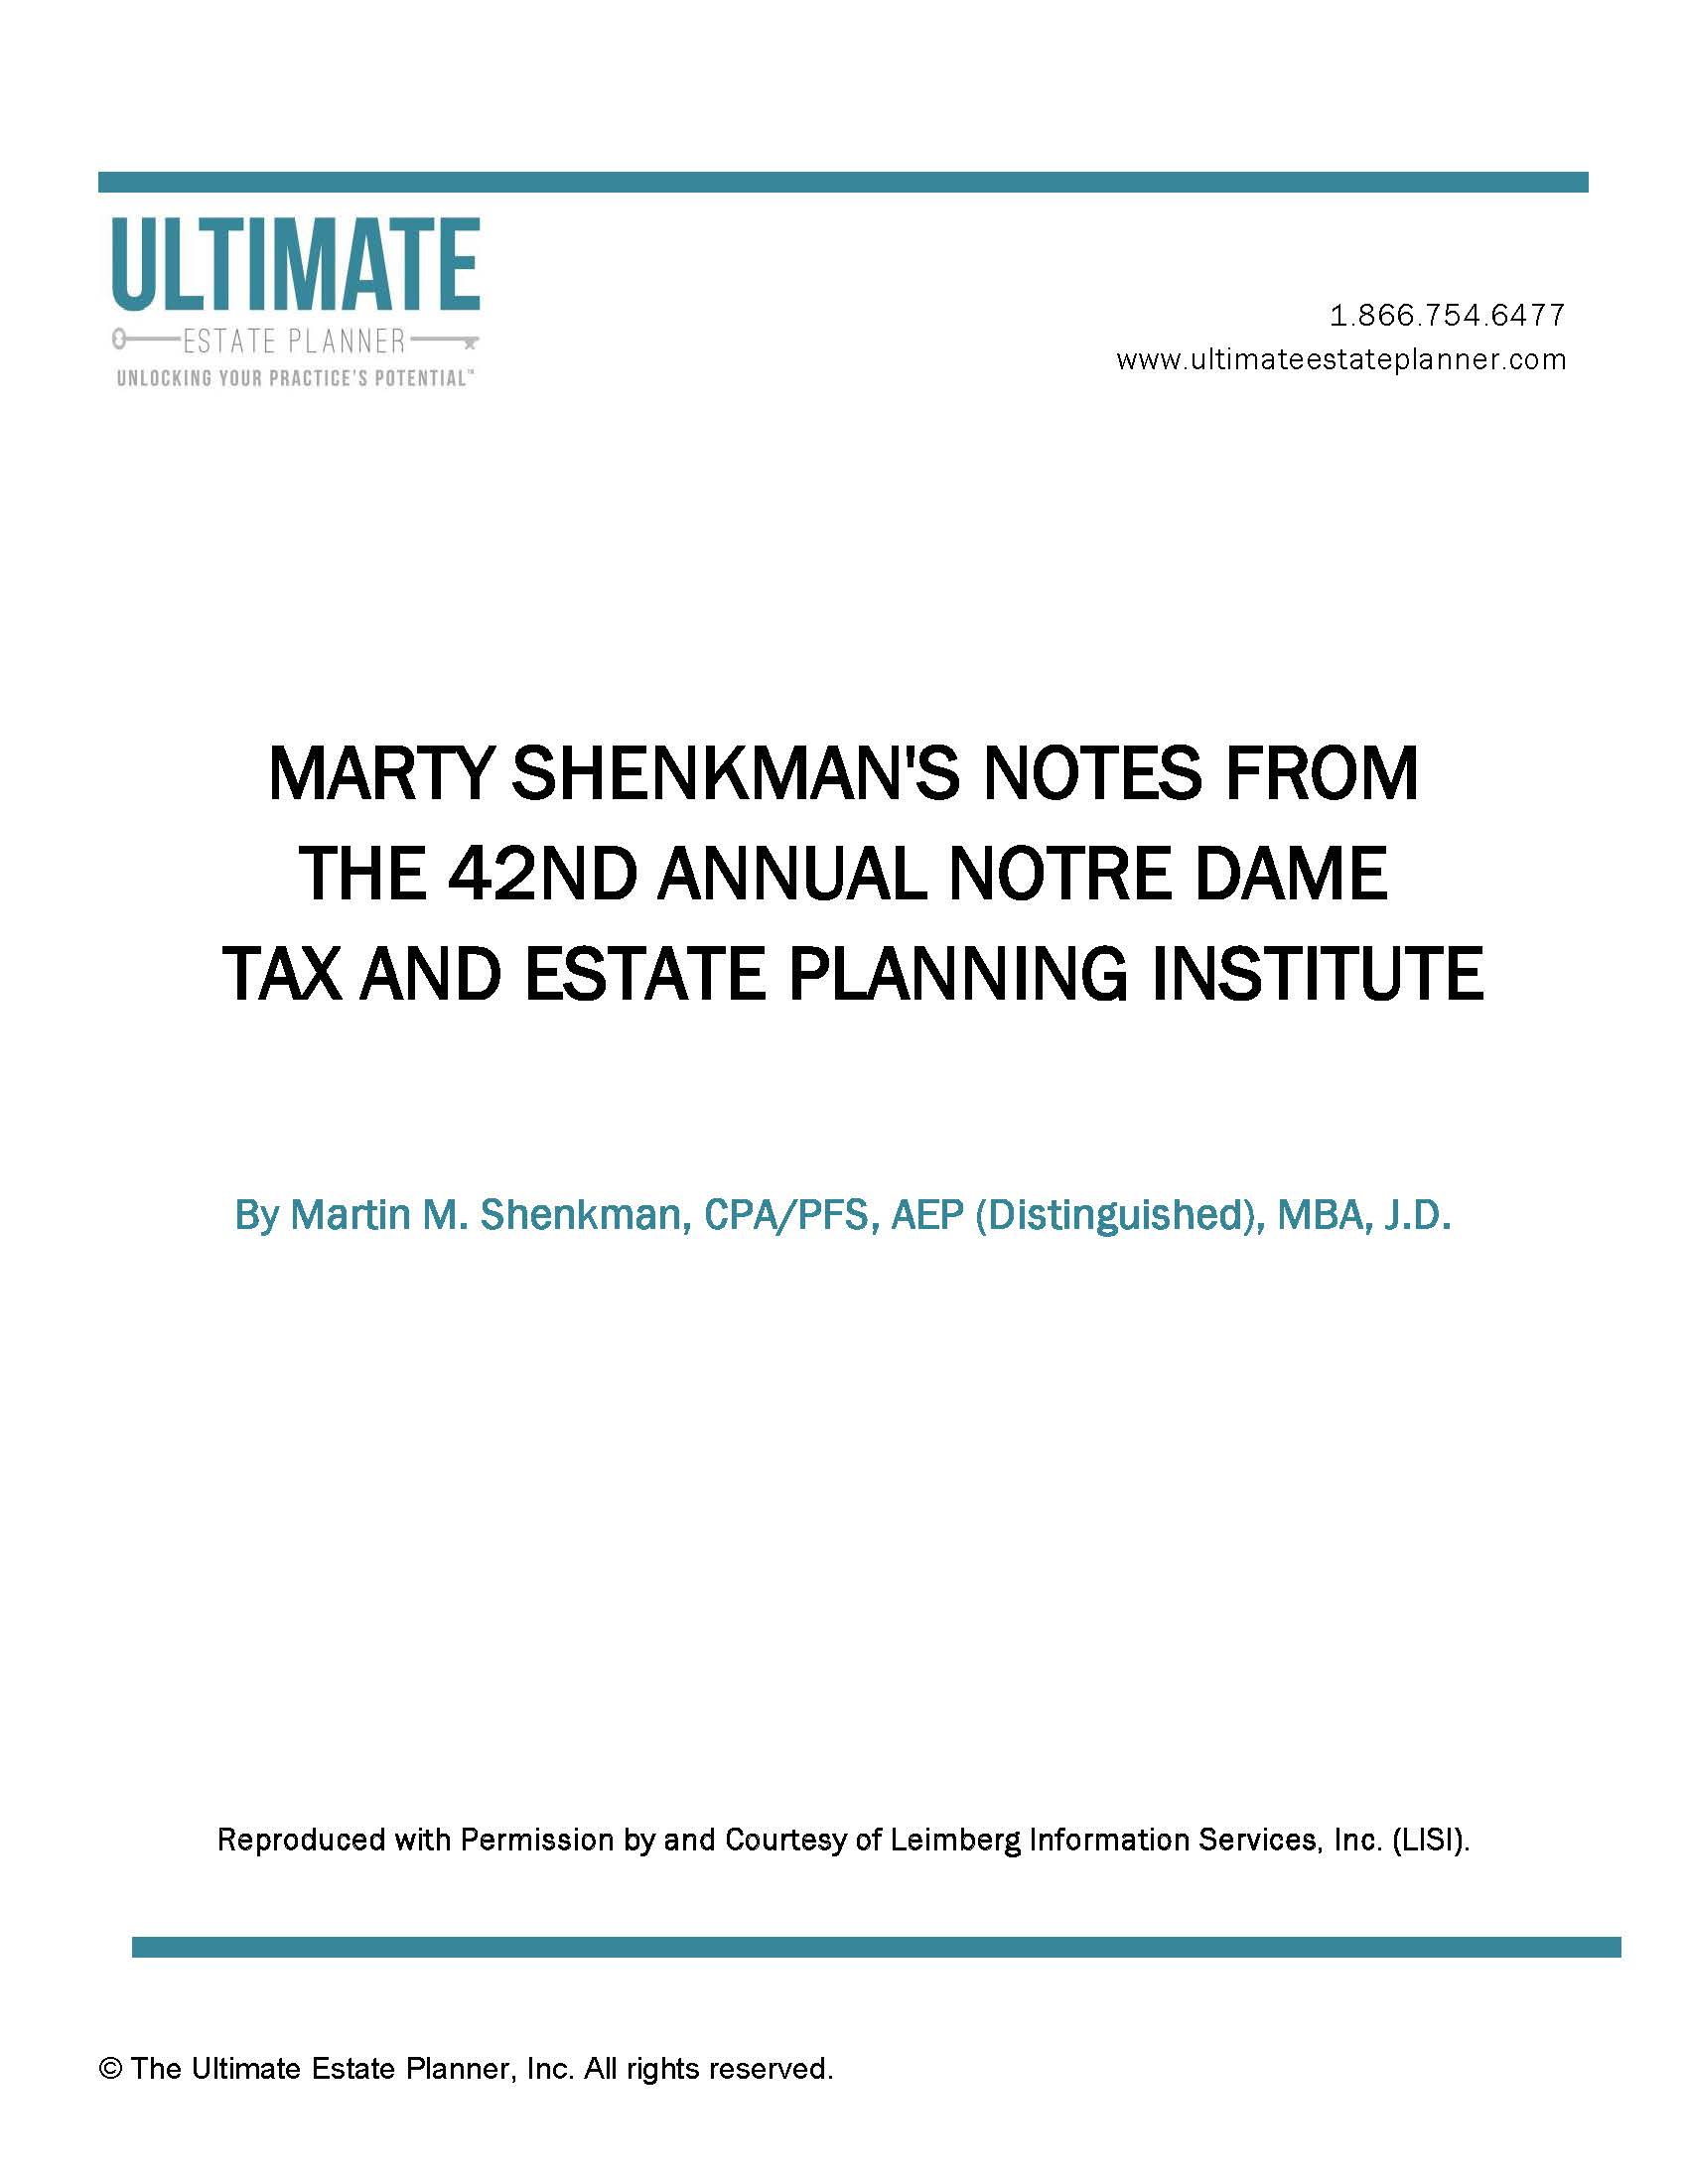 42nd-annual-notre-dame-tax-and-estate-planning-institute-summary-notes